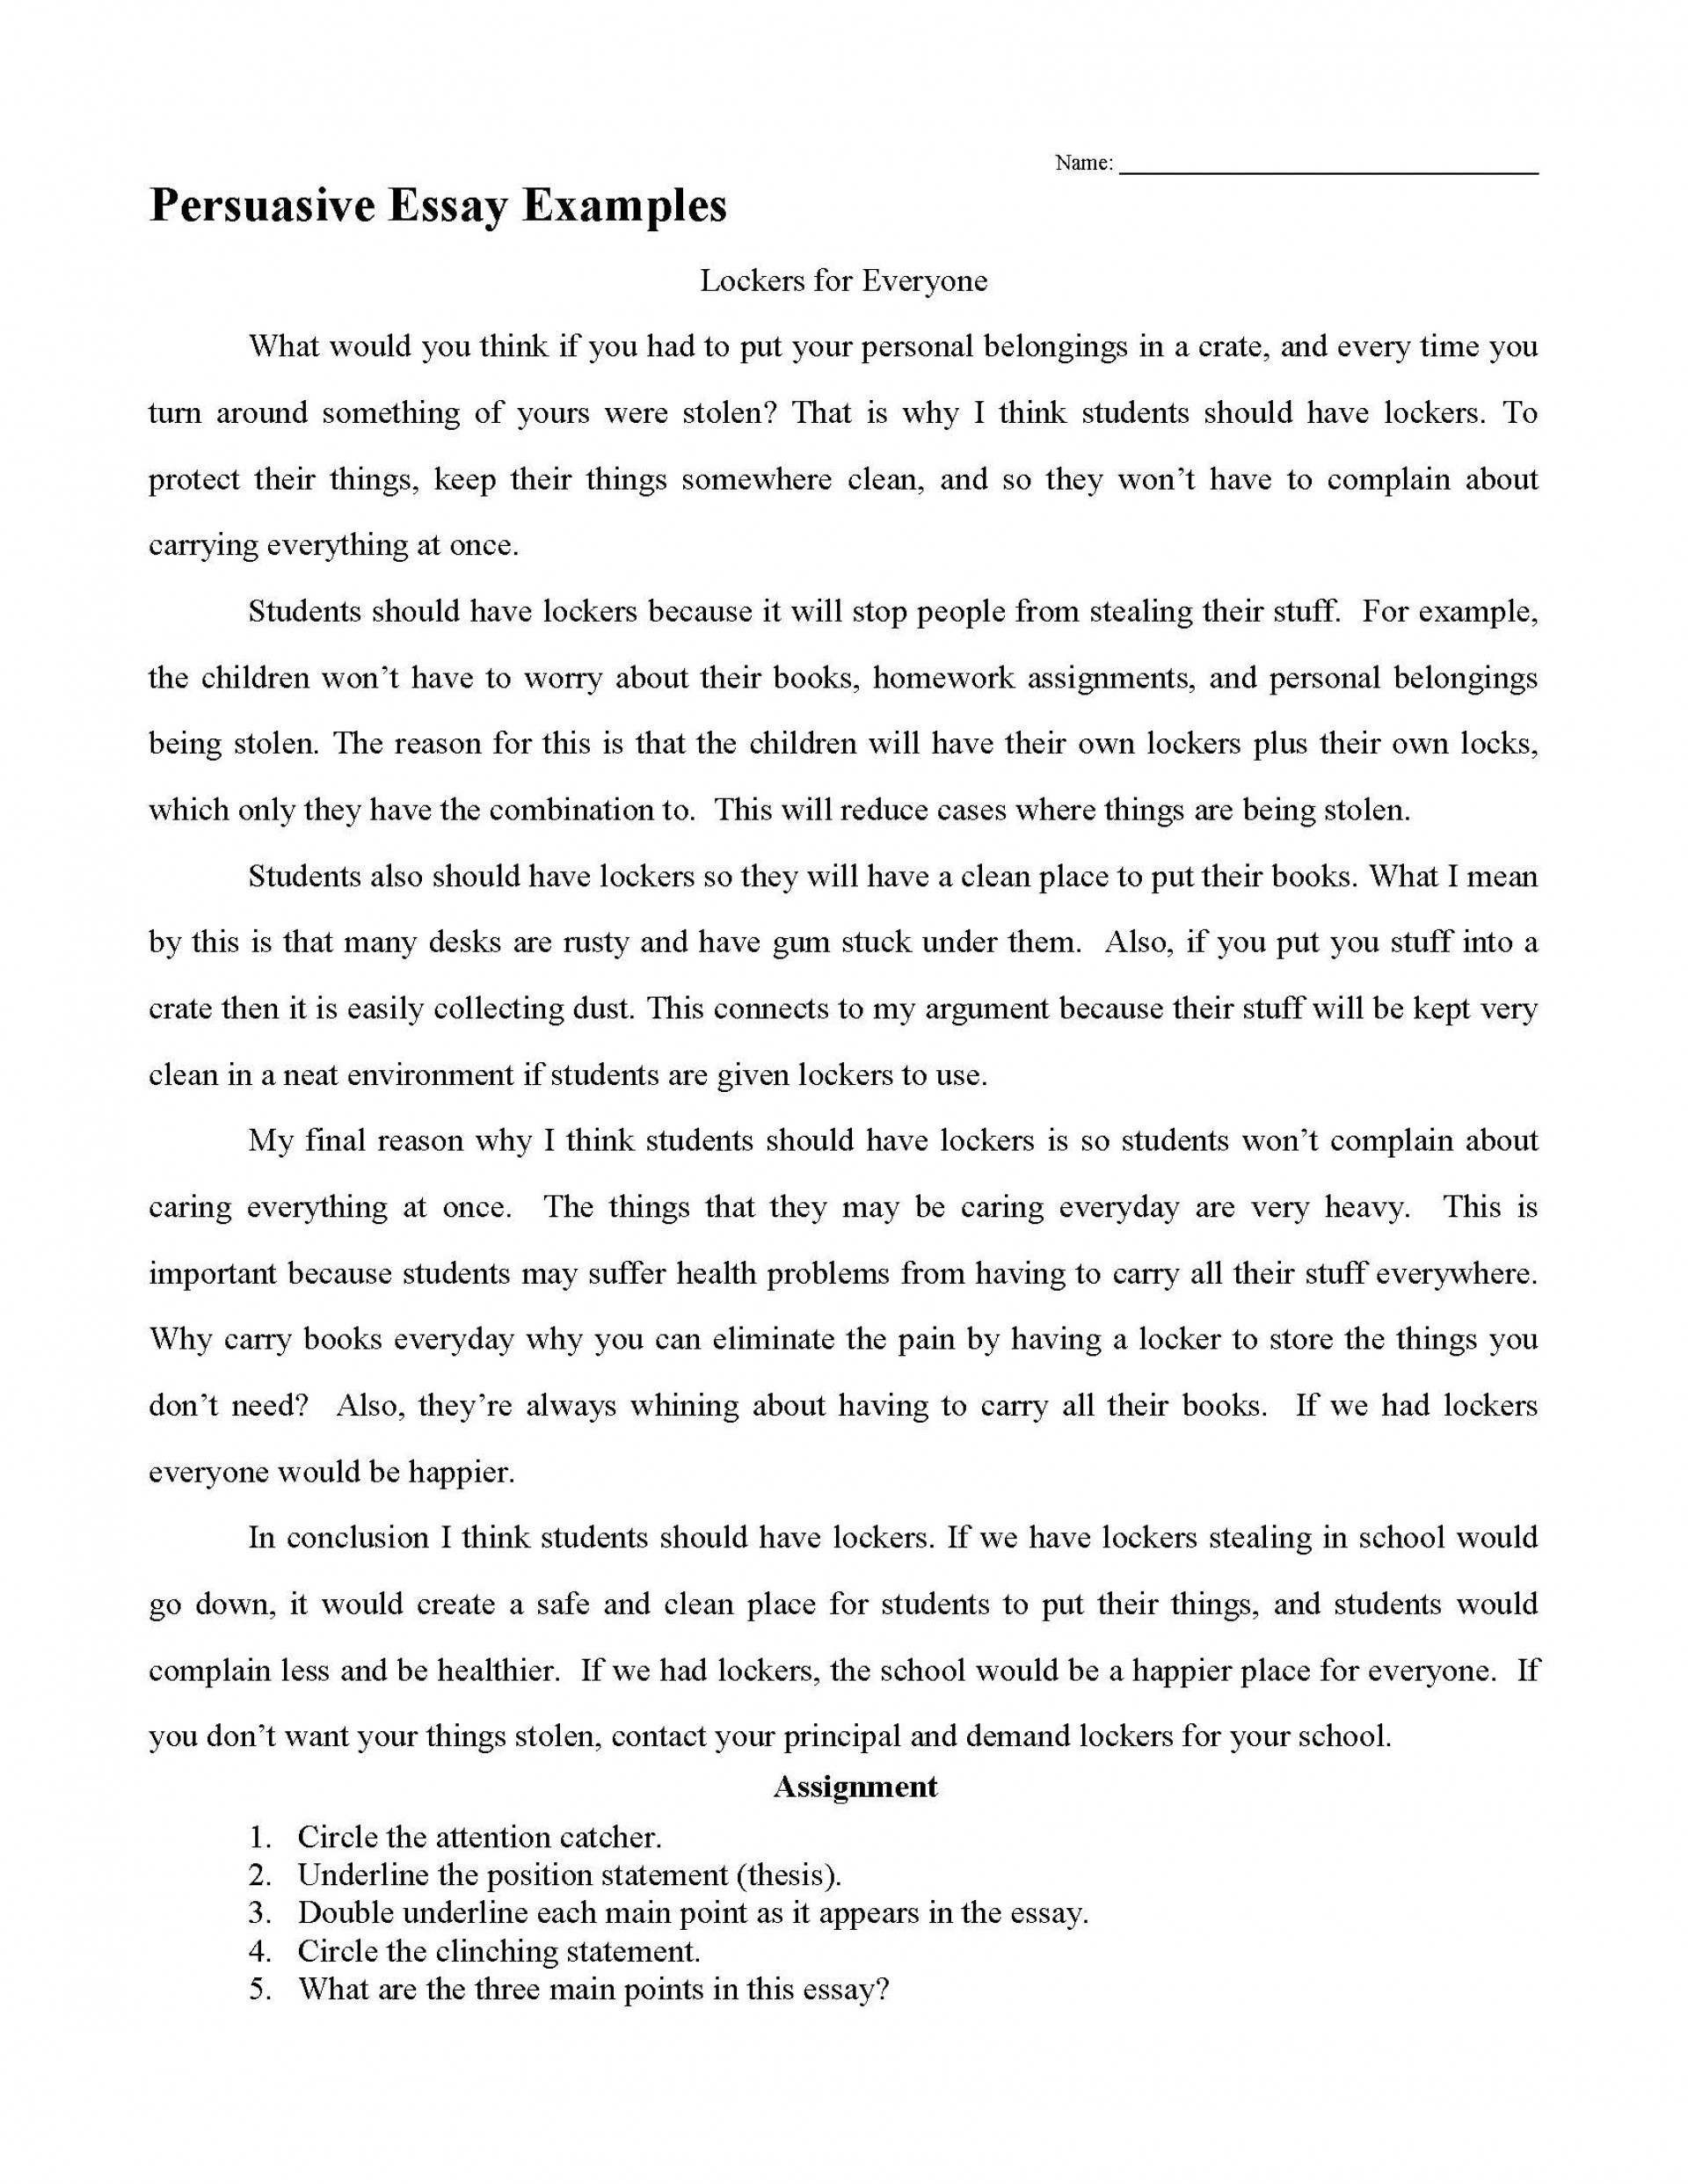 024 How To Start The Beginning Of Research Paper Persuasive Essay Examples Unique A Discussion Section Write Body Apa Intro Example 1920